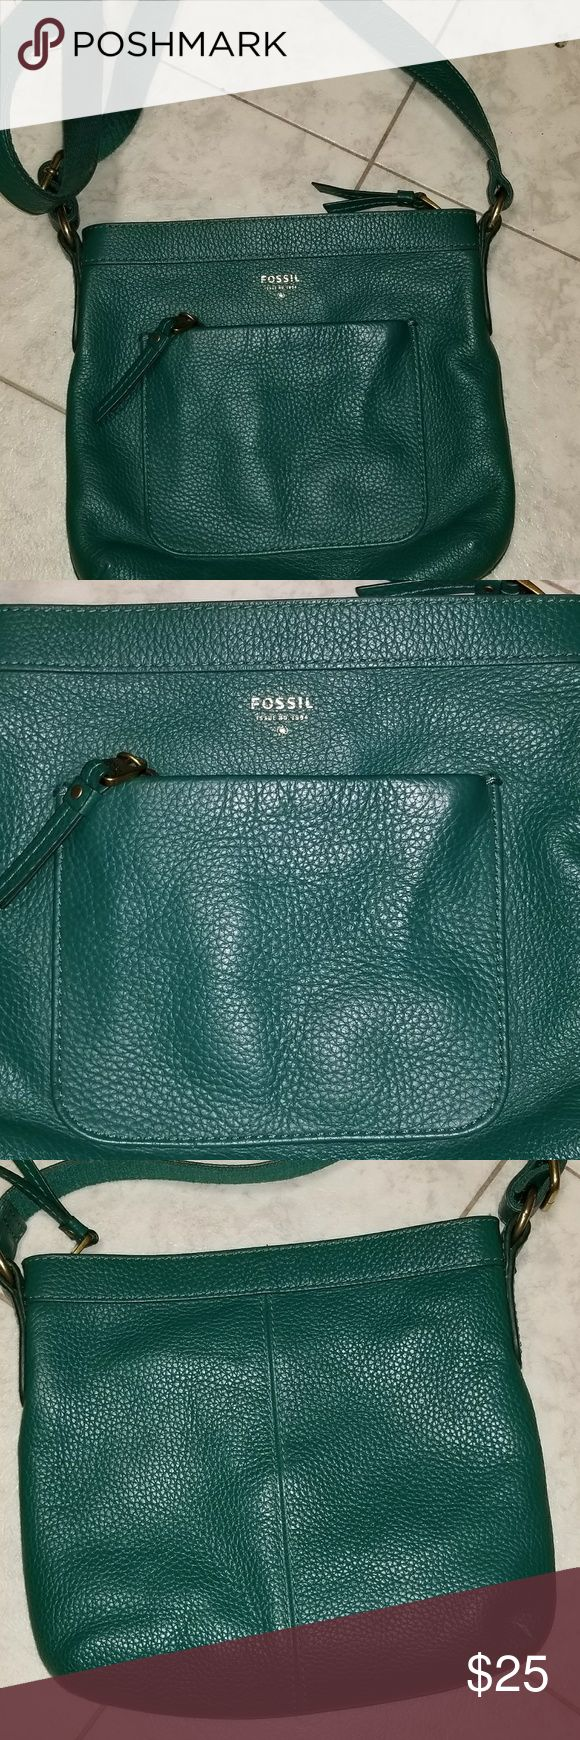 """Green Fossil Leather Crossbody purse Adjustable strap with maximum drop of 25"""".   Cow hide leather 9""""T. 10""""W 1 zippered outside pocket 2 open inside pockets 1 zippered inside pocket Zipper closure on top EUC! Fossil Bags Crossbody Bags"""